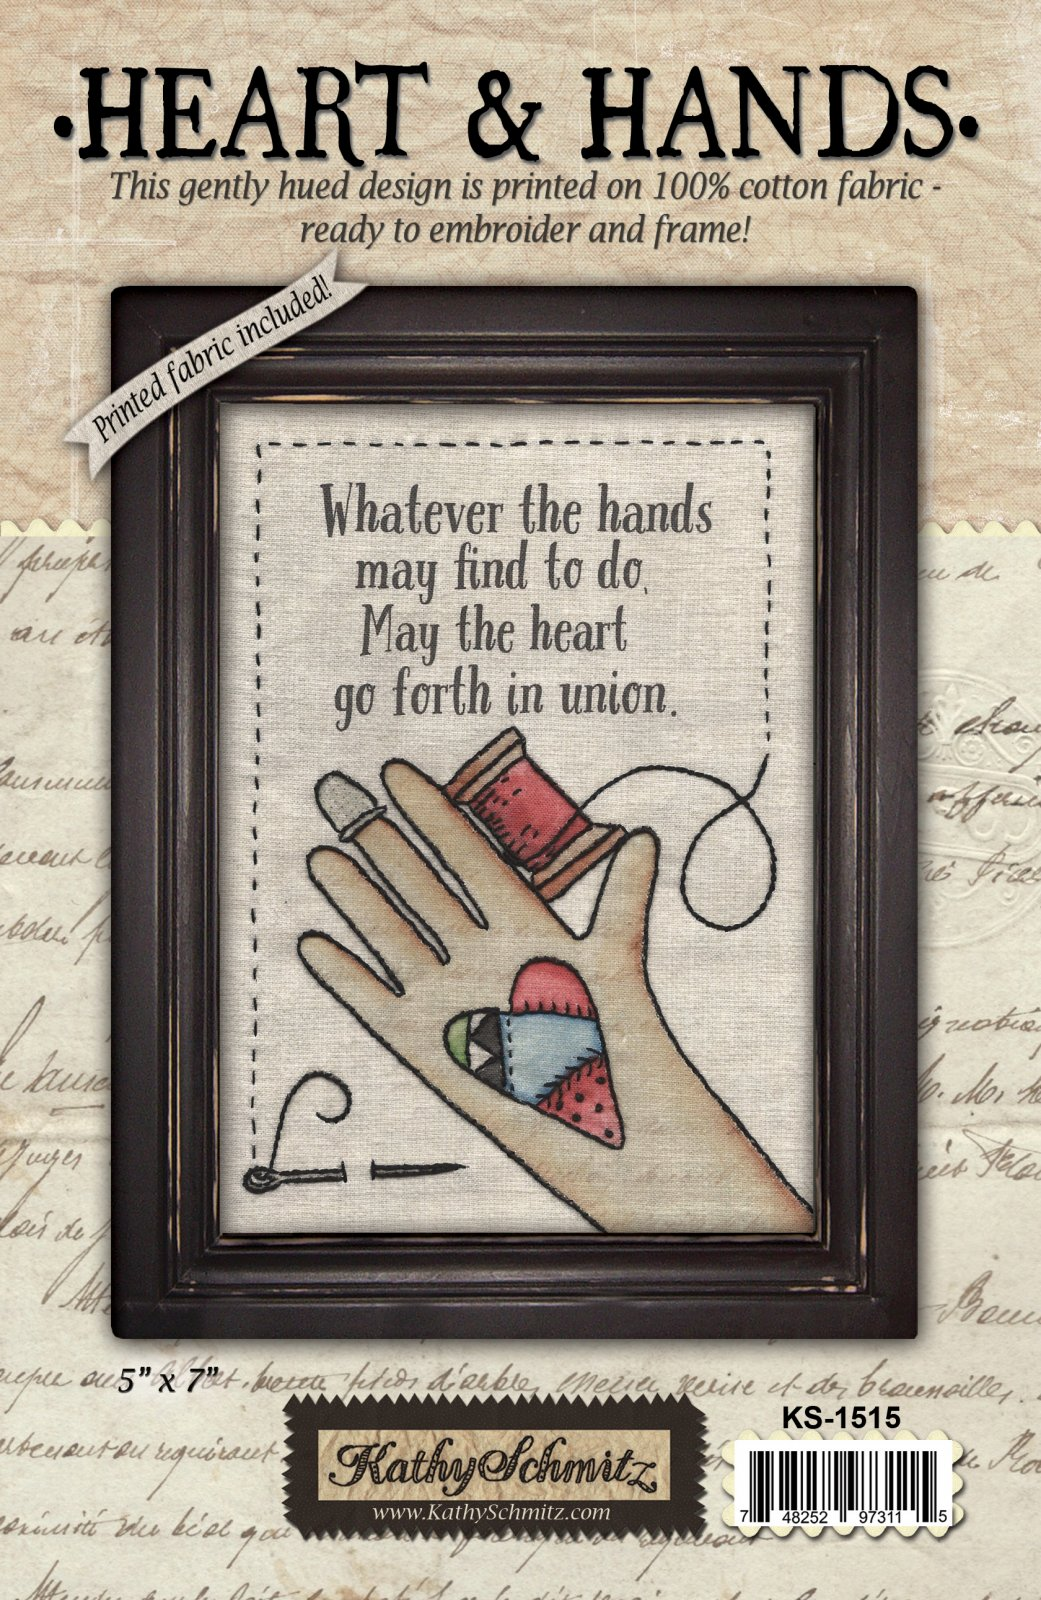 Heart & Hands by Kathy Schmitz